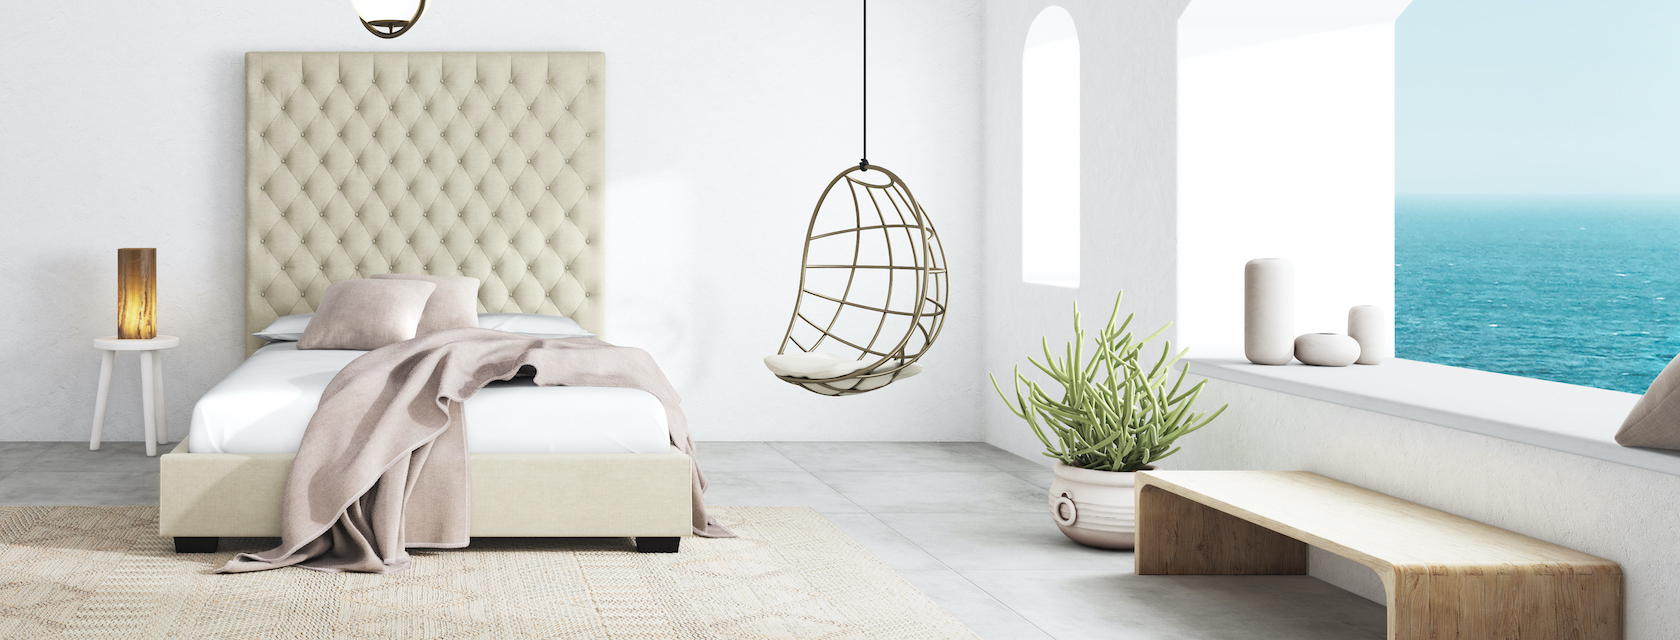 why we love the marbella linen bed frame saatva